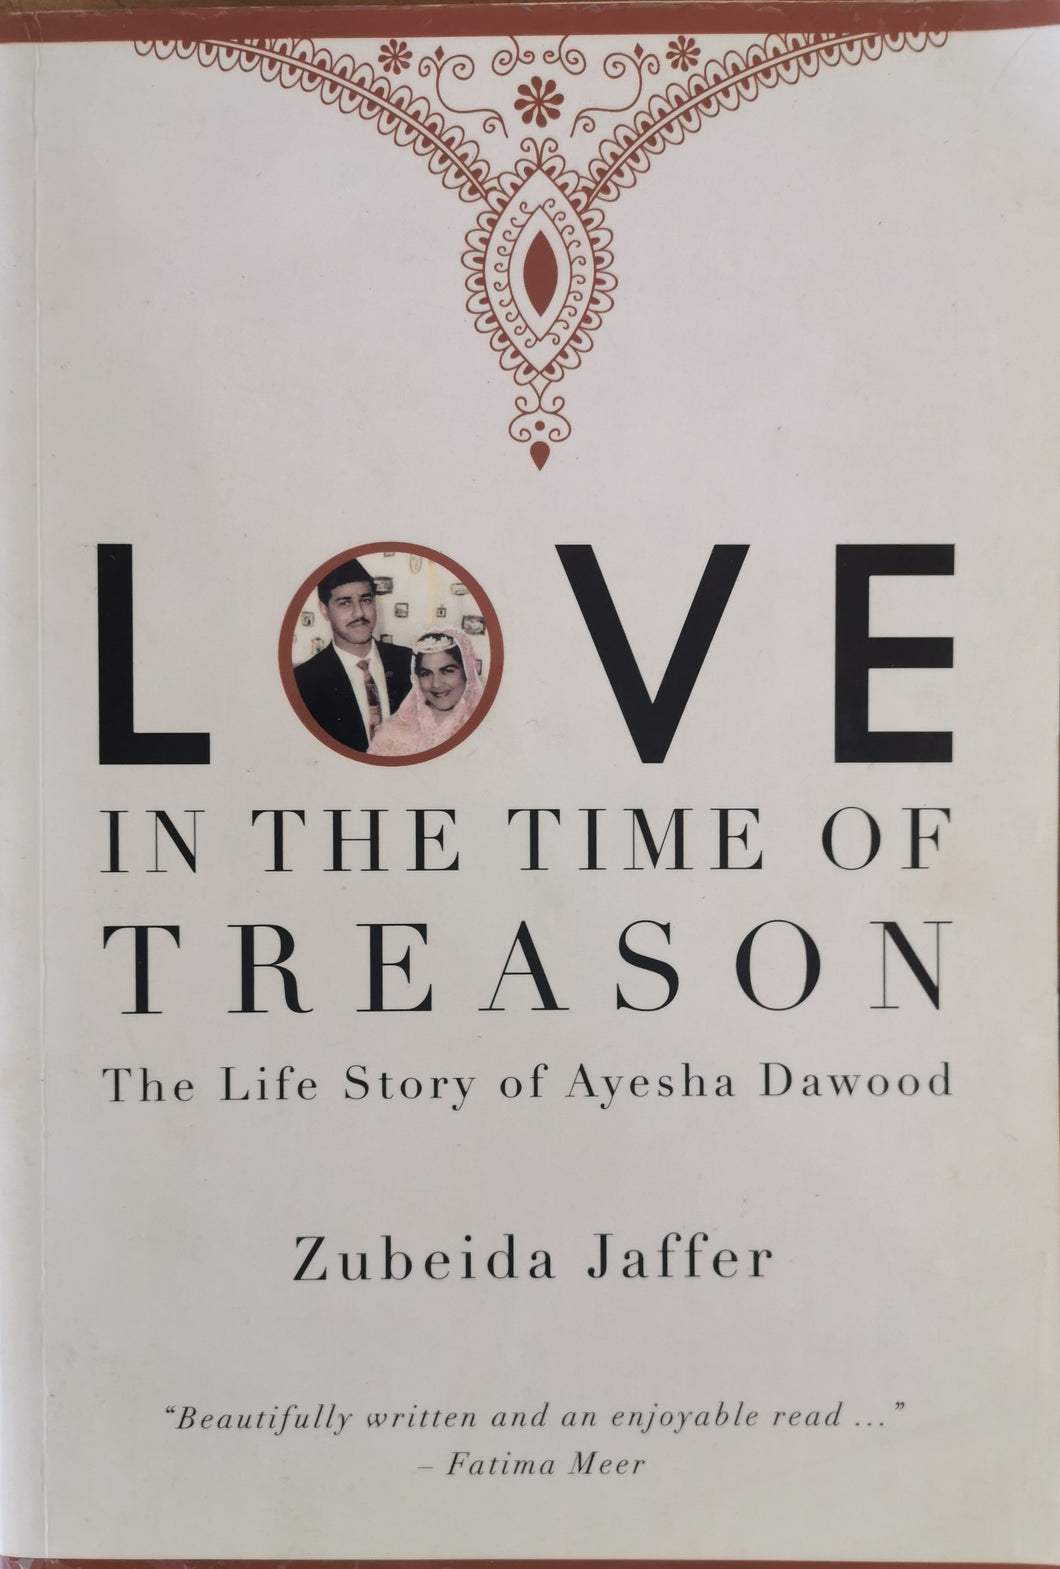 Love in the Time of Treason: The Life Story of Ayesha Dawood by Zubeida Jaffer